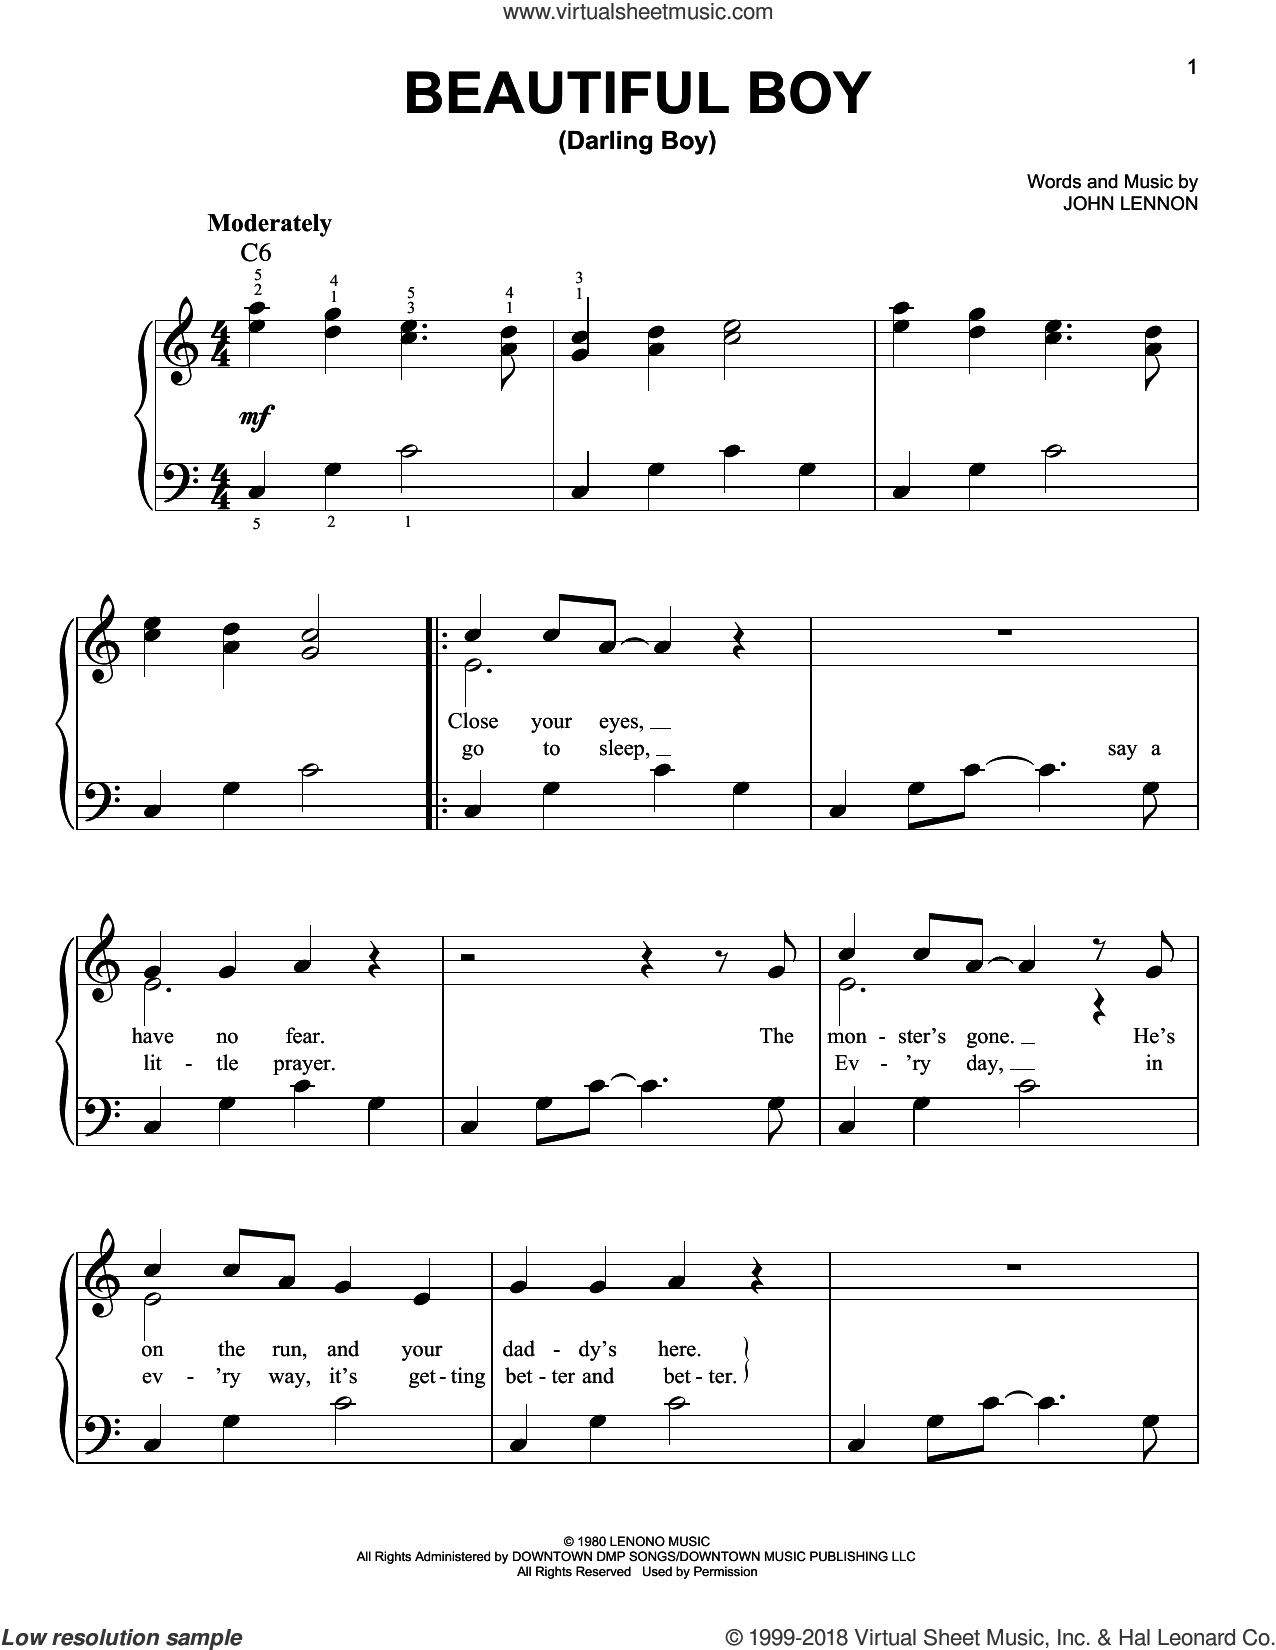 Beautiful Boy (Darling Boy) sheet music for piano solo by John Lennon, easy skill level